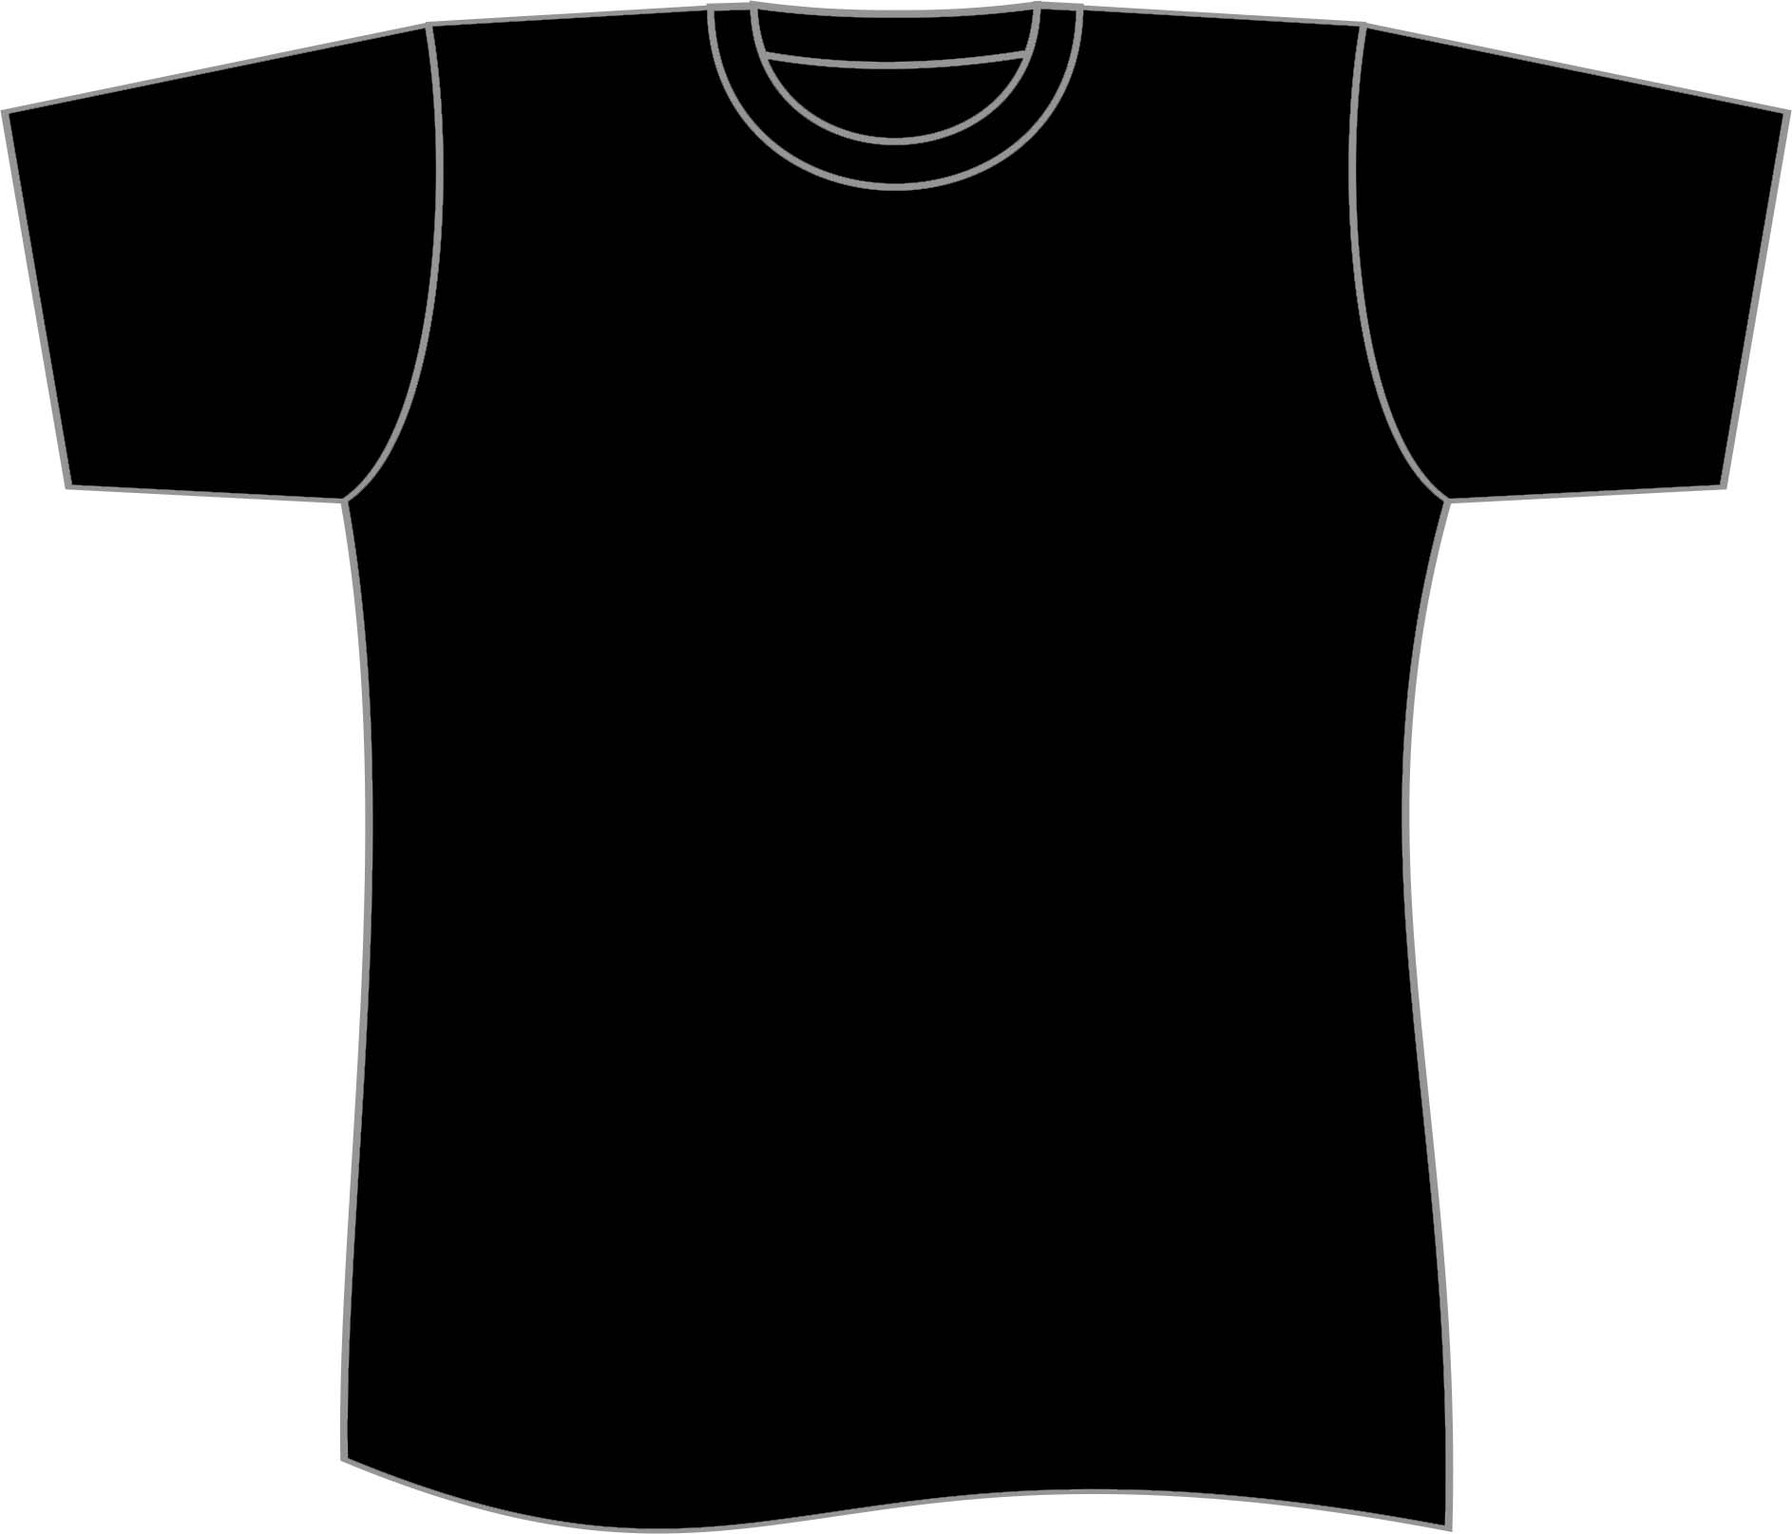 T Shirt Clipart Images | Free download best T Shirt Clipart Images ...